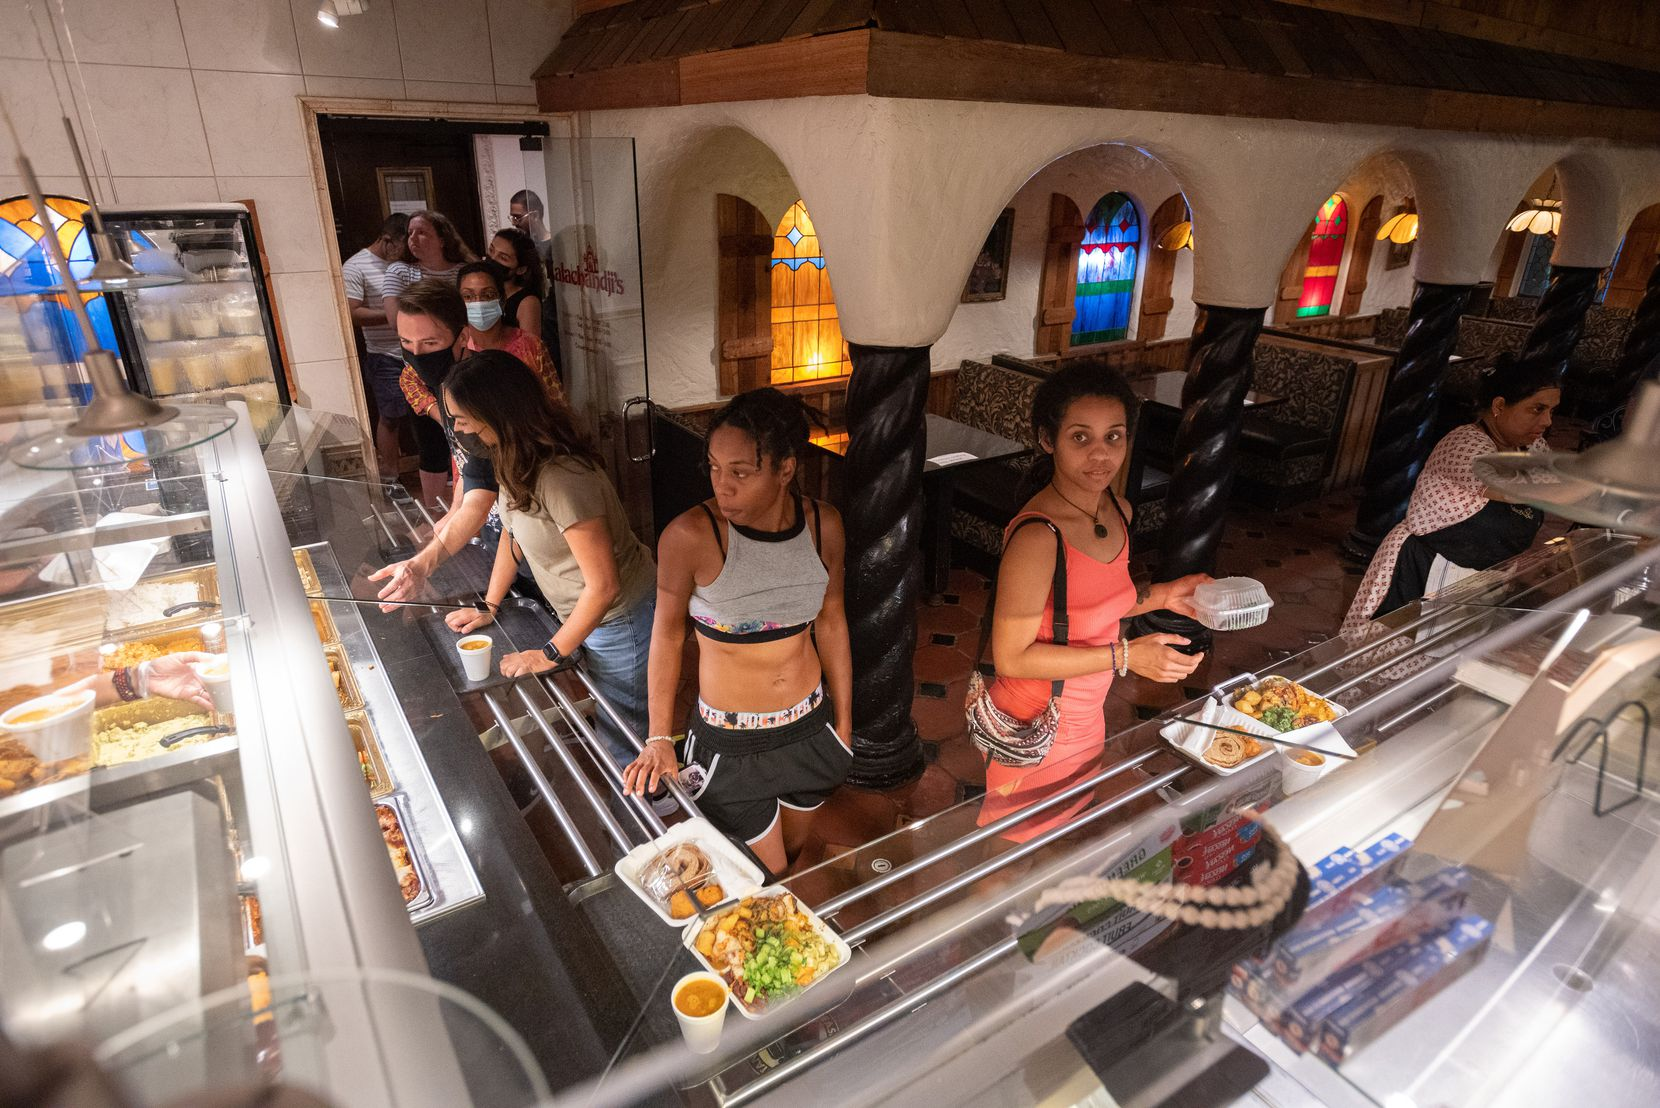 Shar Ma'at, left, and Jupiter-Morgan Dixon wait to pay for their meal in the buffet line at Kalachandji's vegetarian restaurant on Gurley Avenue in east Dallas, on Saturday, Aug. 28, 2021.